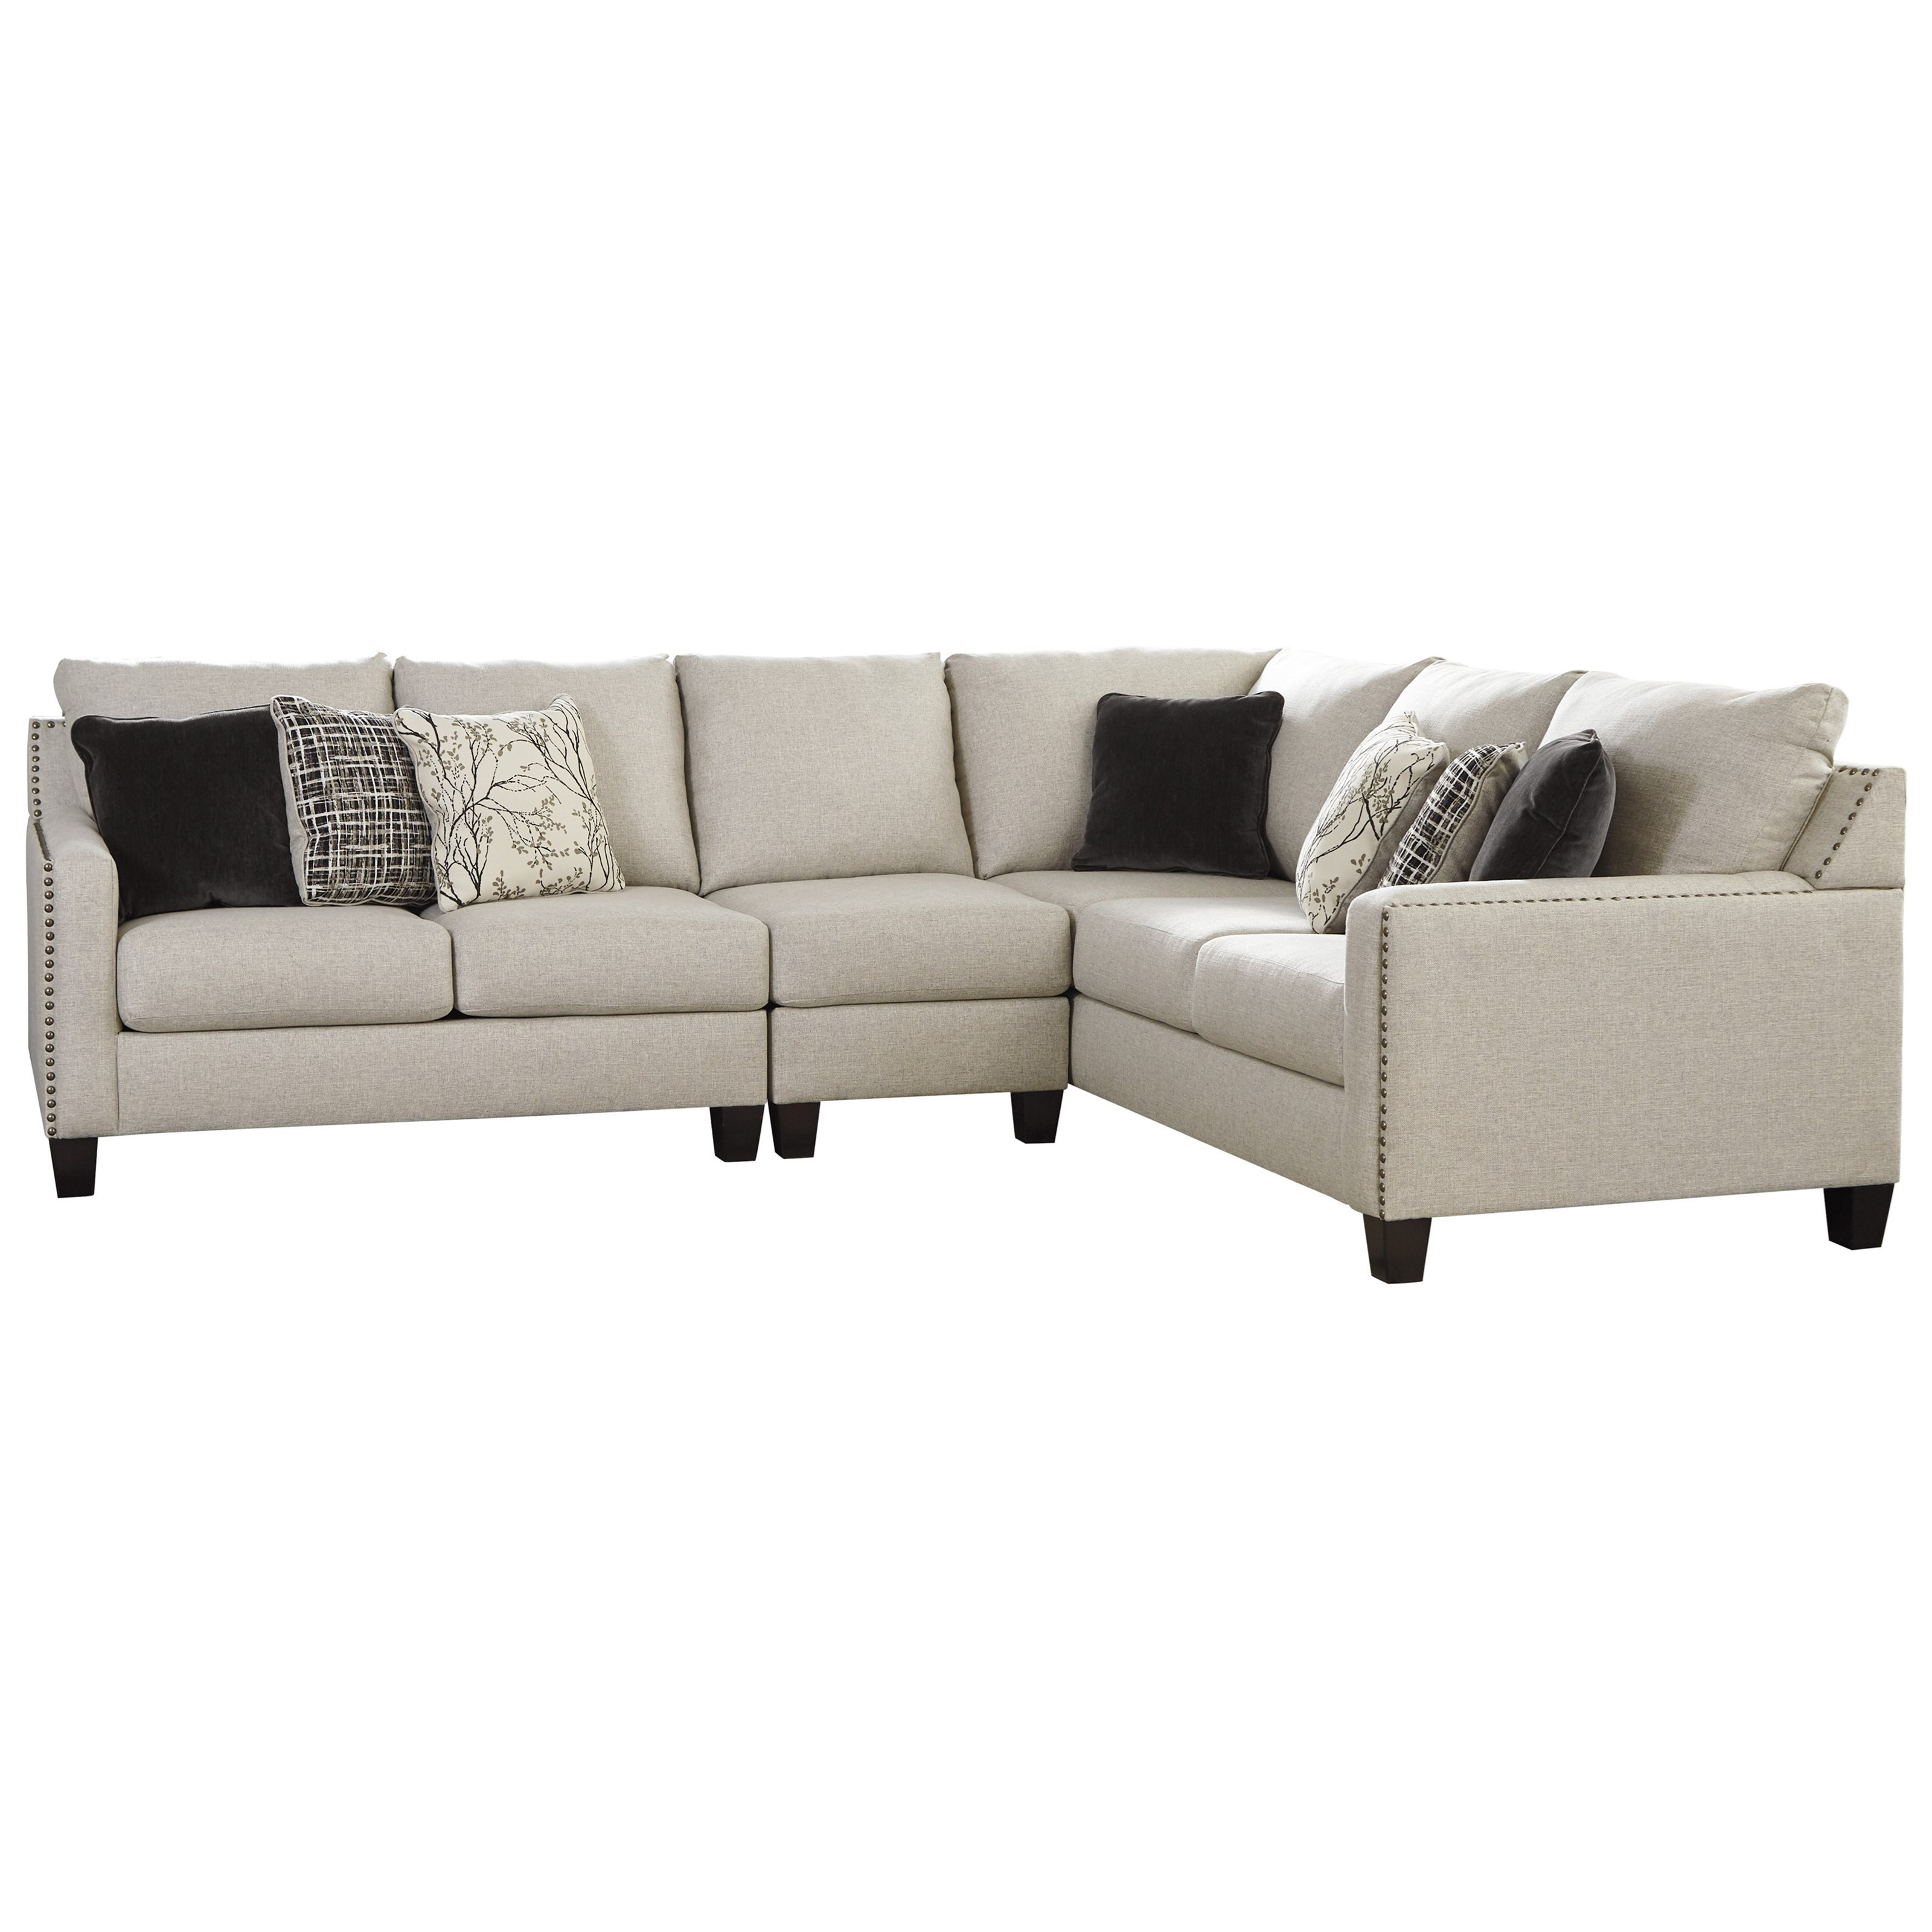 3-Piece Sectional with Nailhead Trim Accents